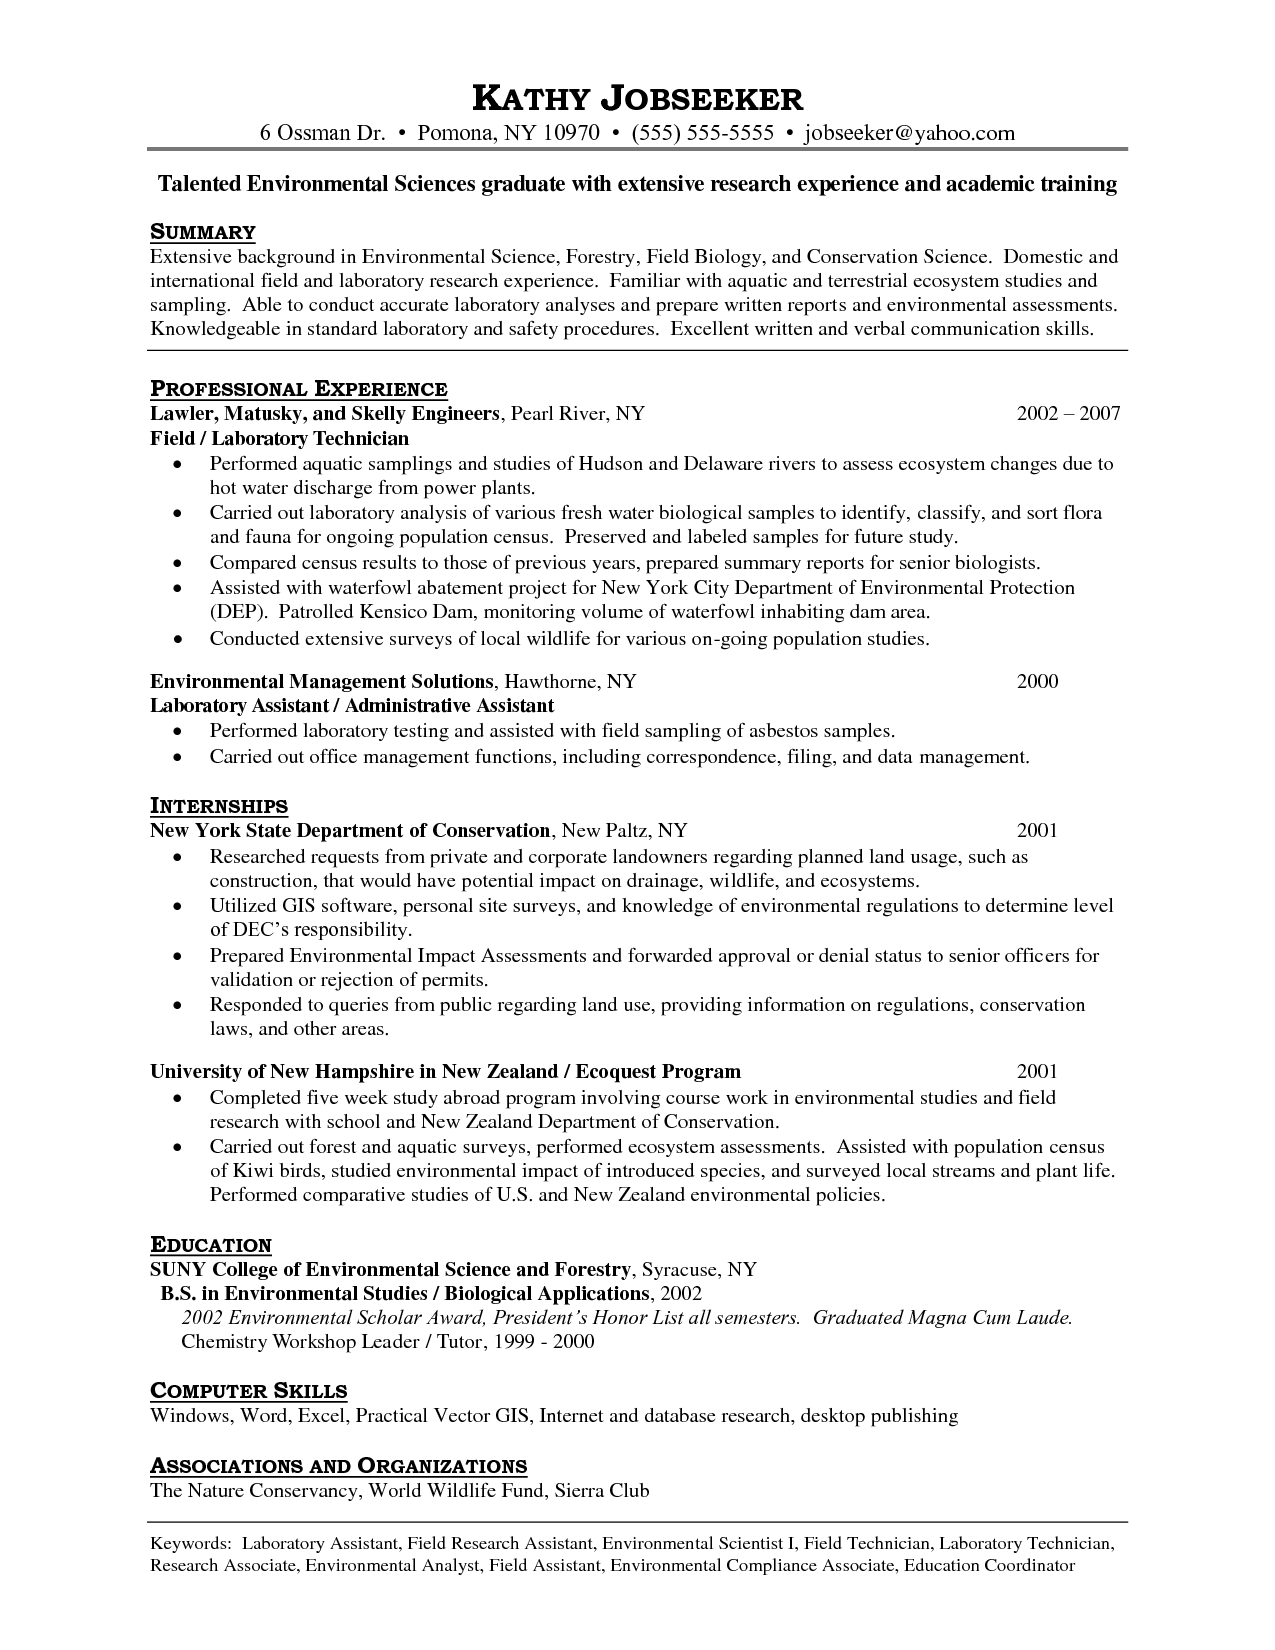 Free Entry Level Lab Technician Resume Templates | ResumeNow